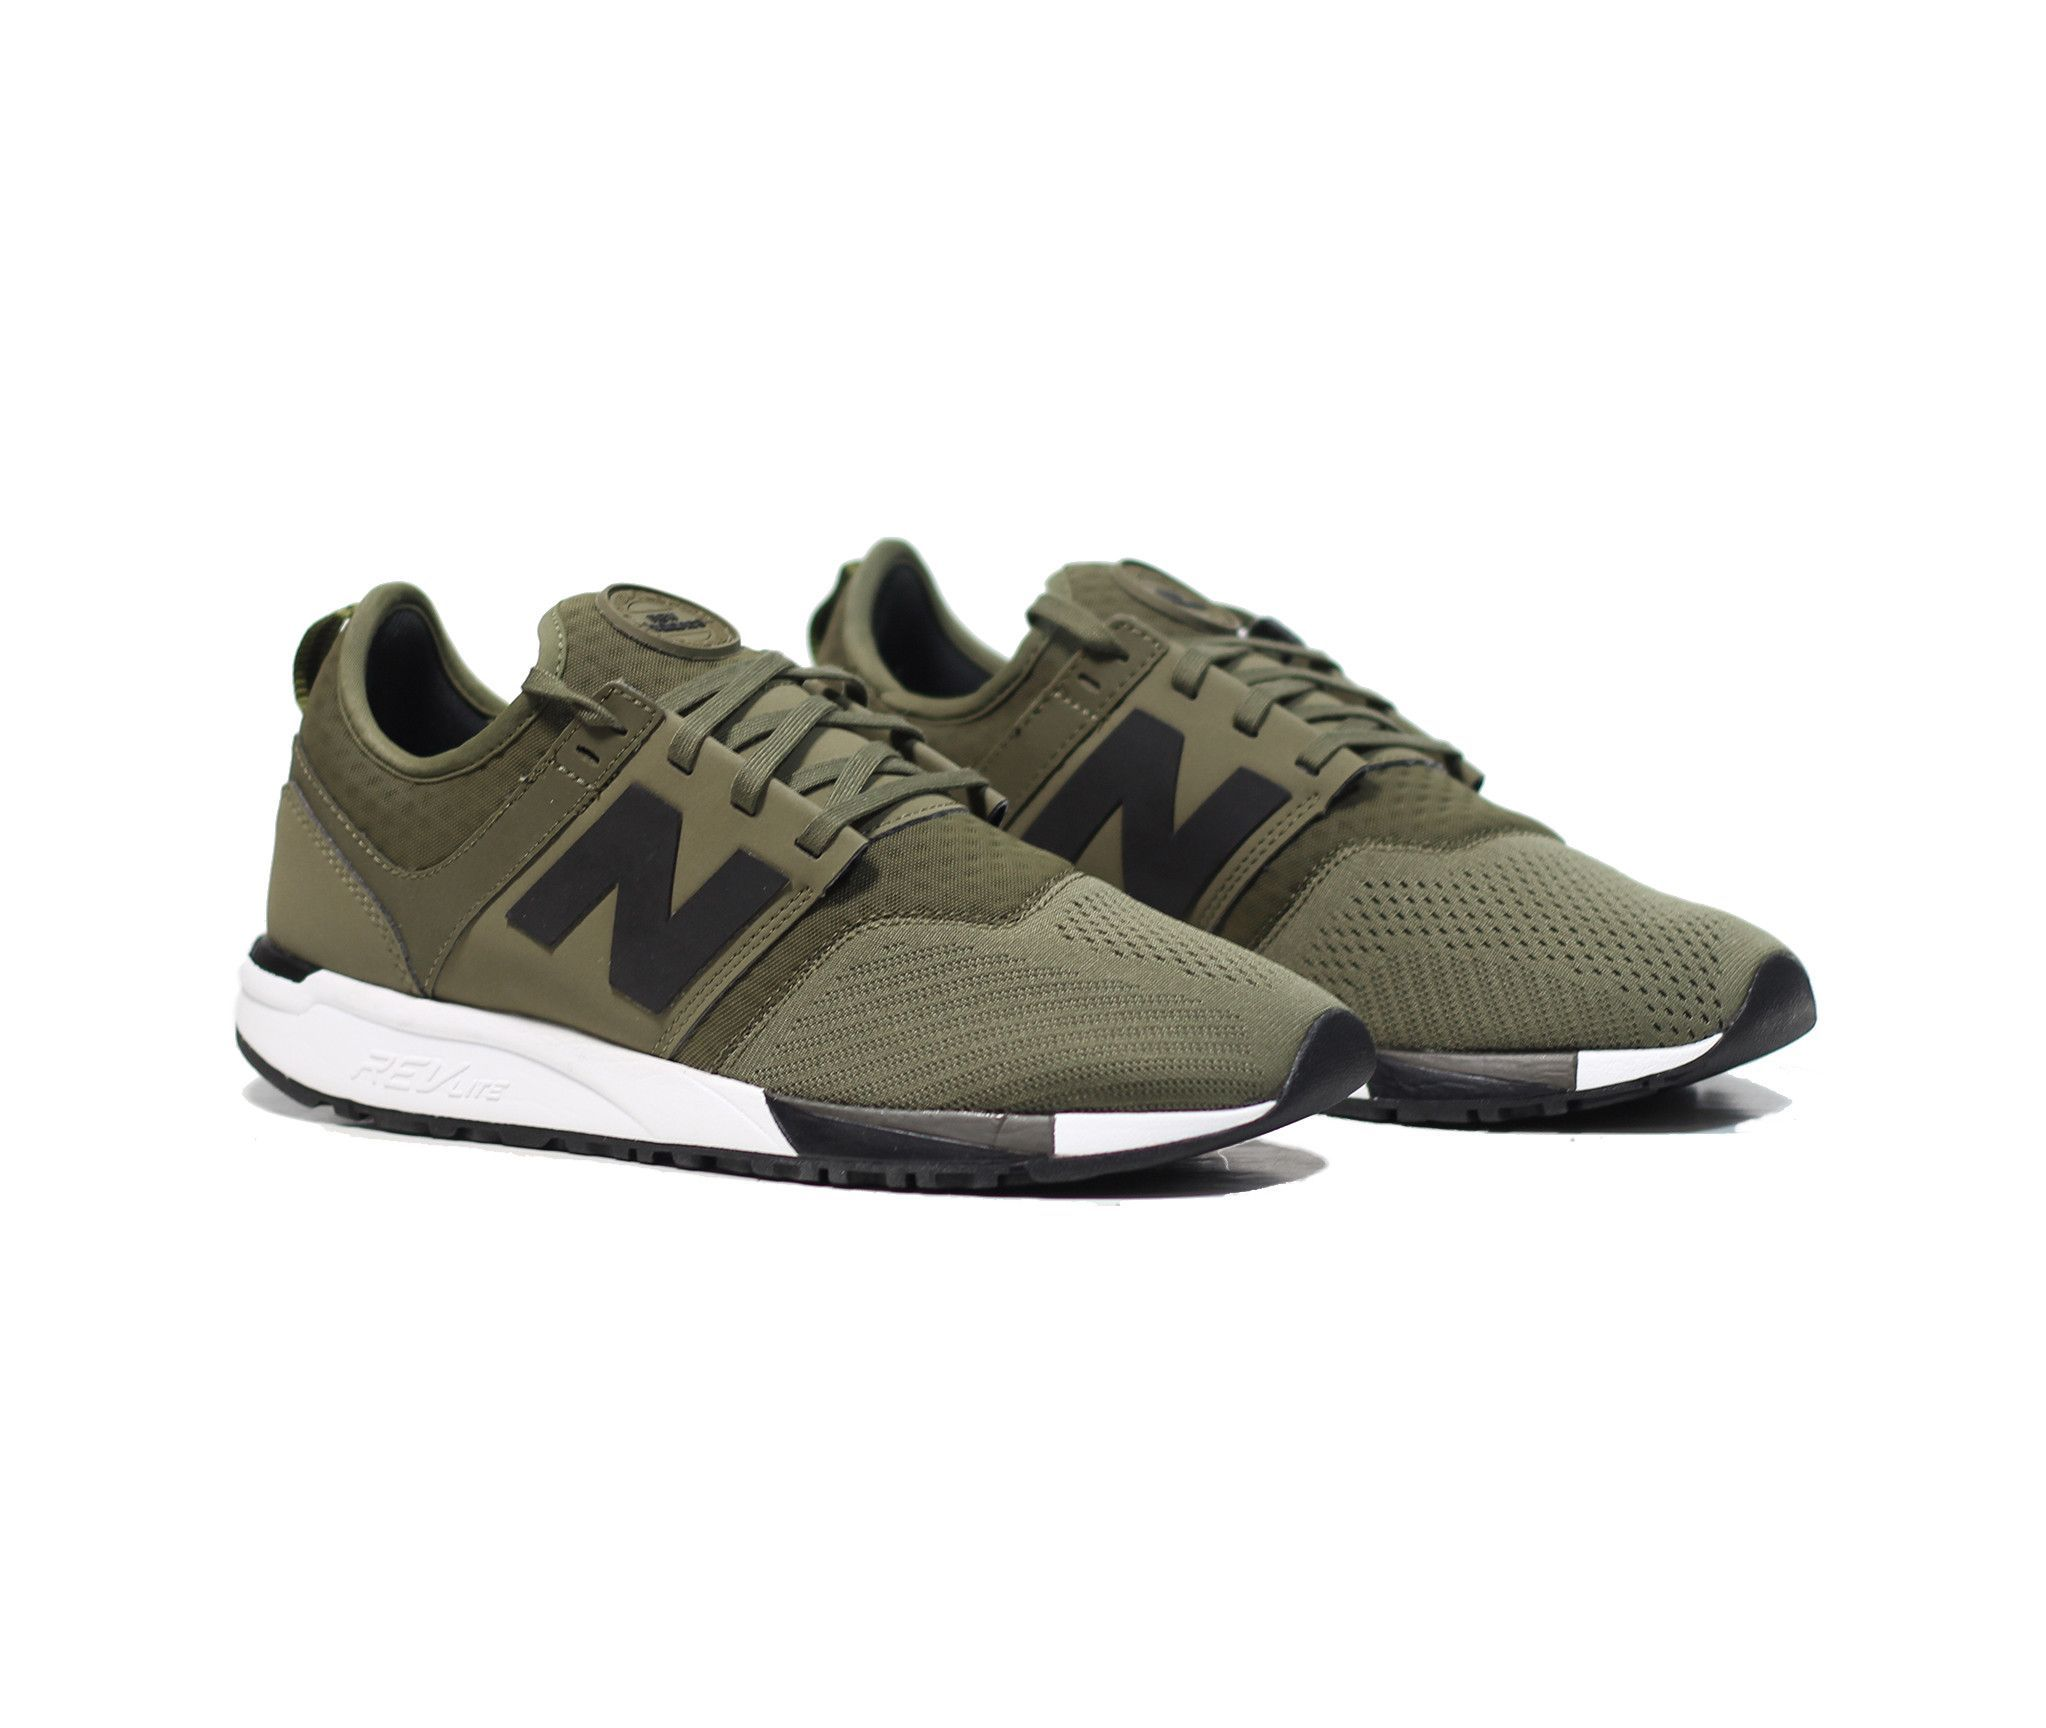 New Balance 247 OliveBlack | SHΩES | Shoes, New balance